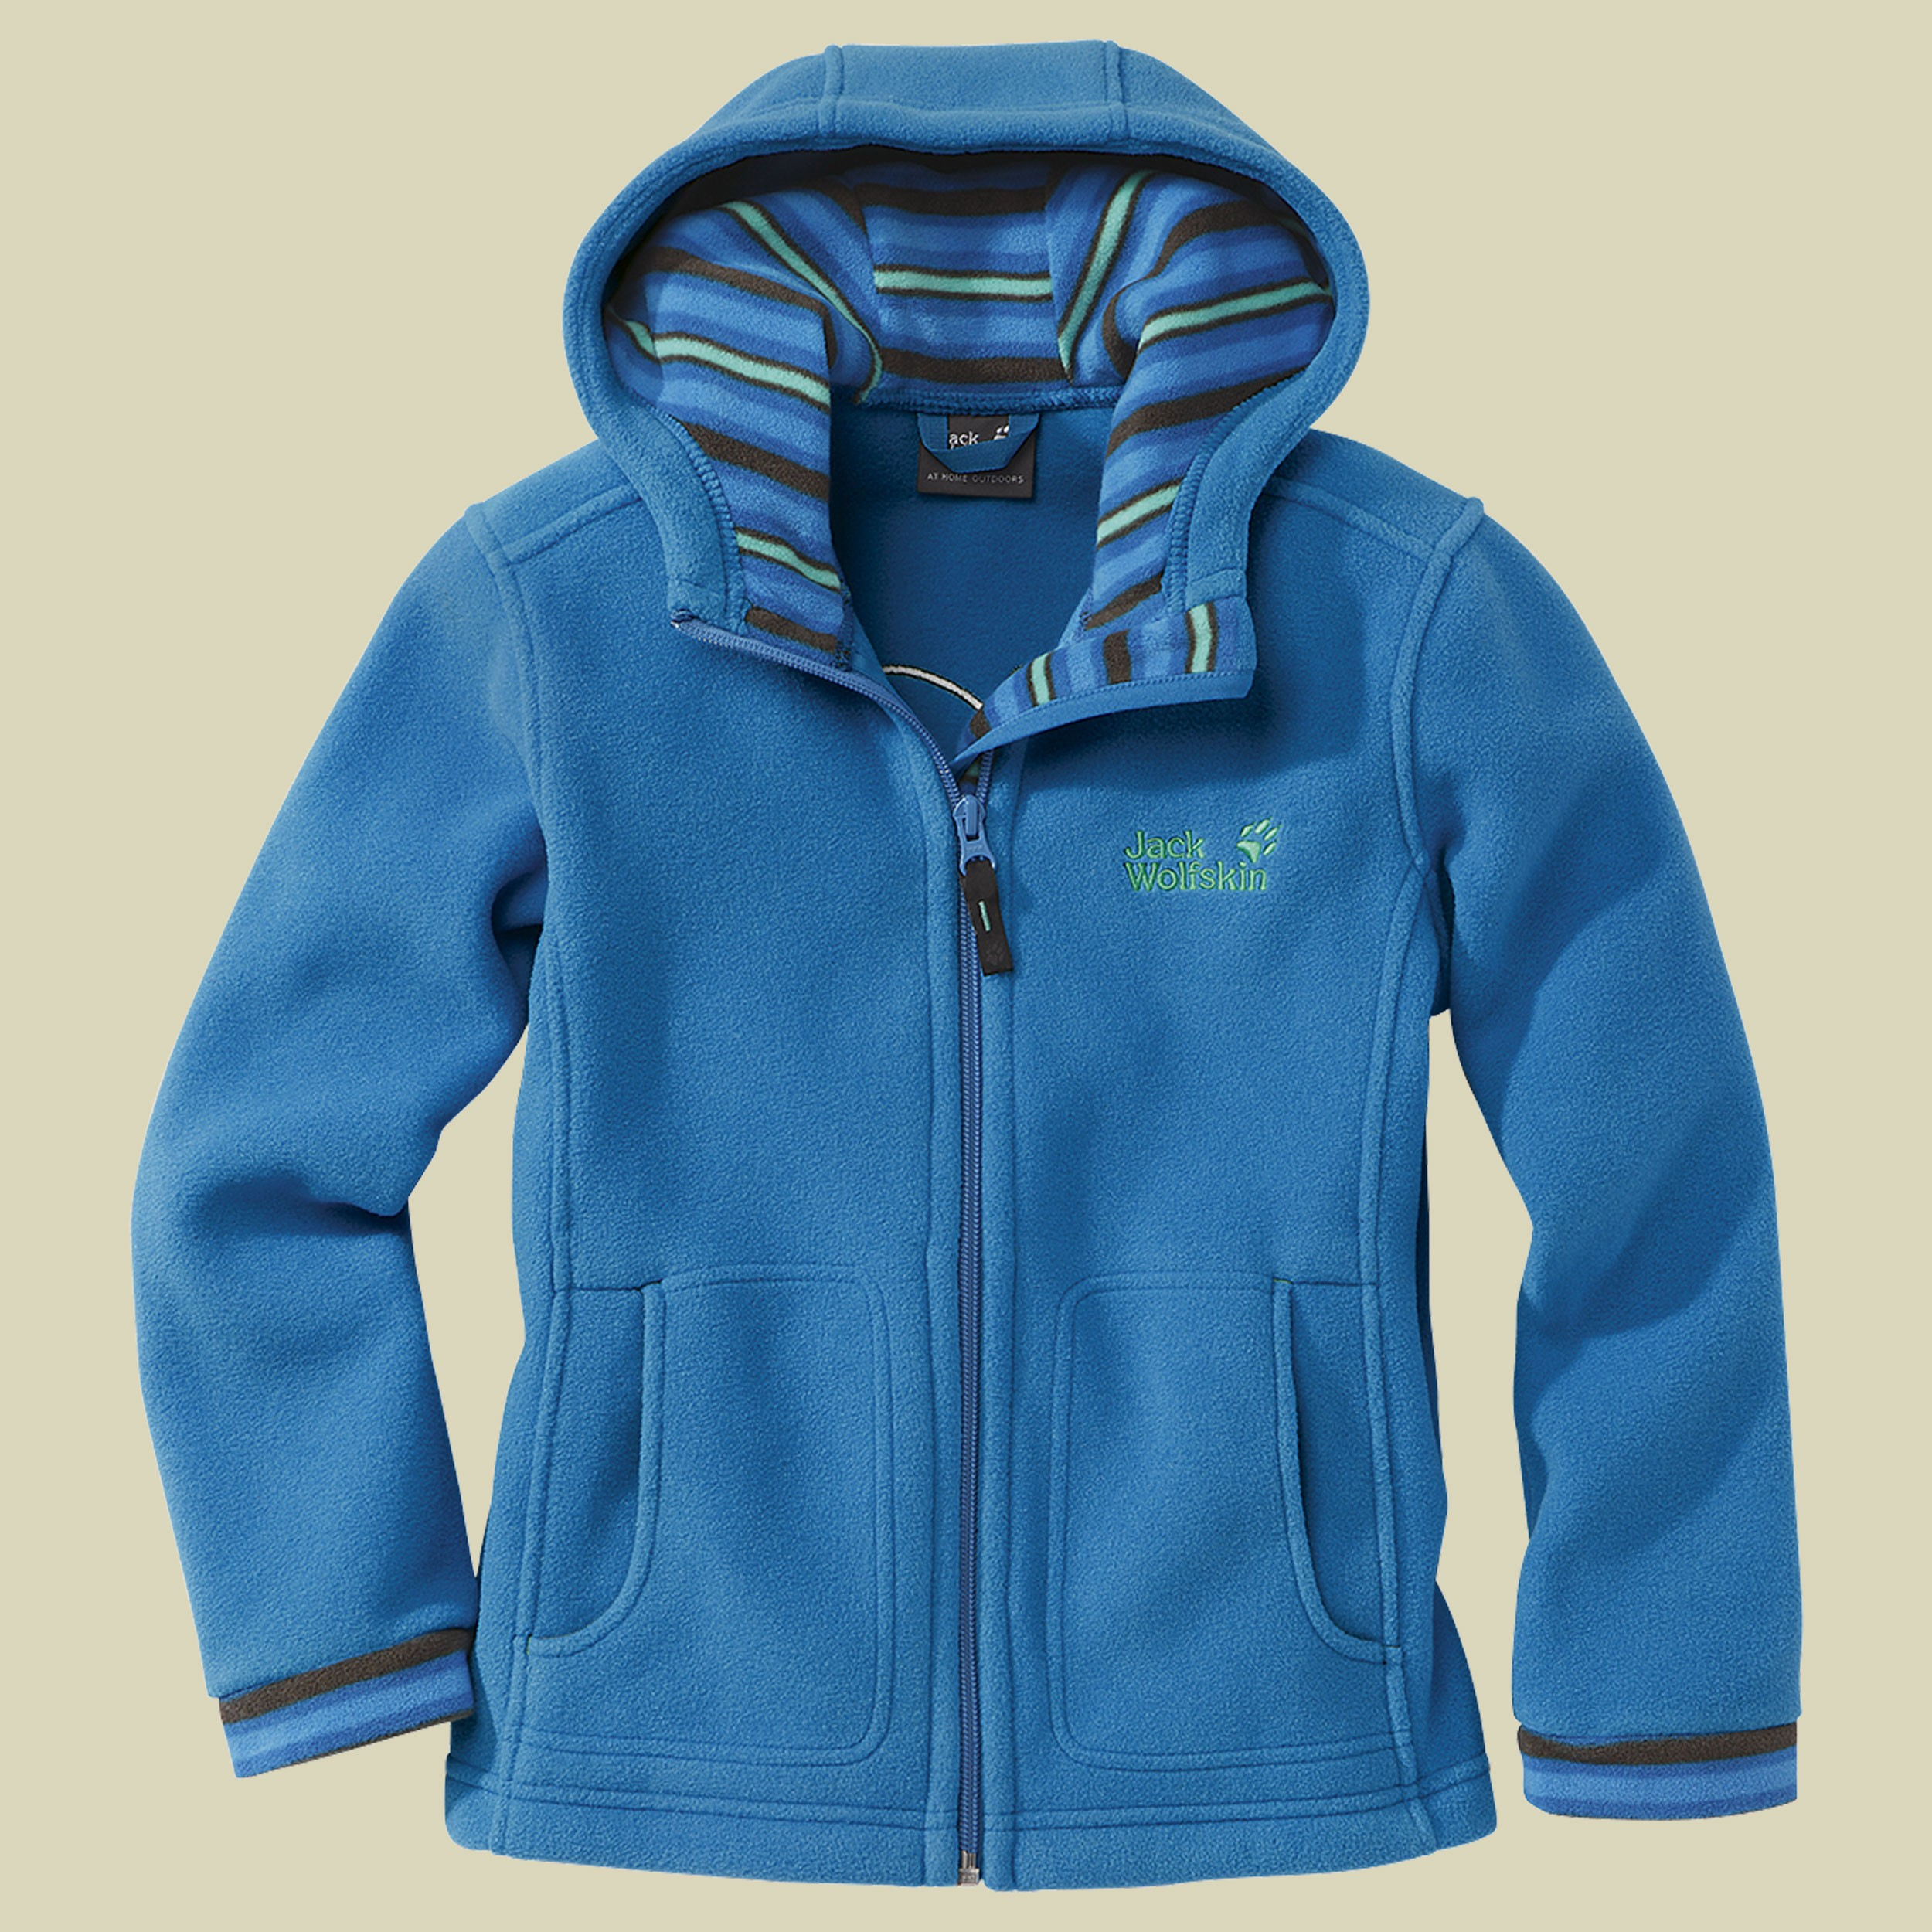 Jack Wolfskin Kids Rainbow Jacket Fleecejacke Kinder